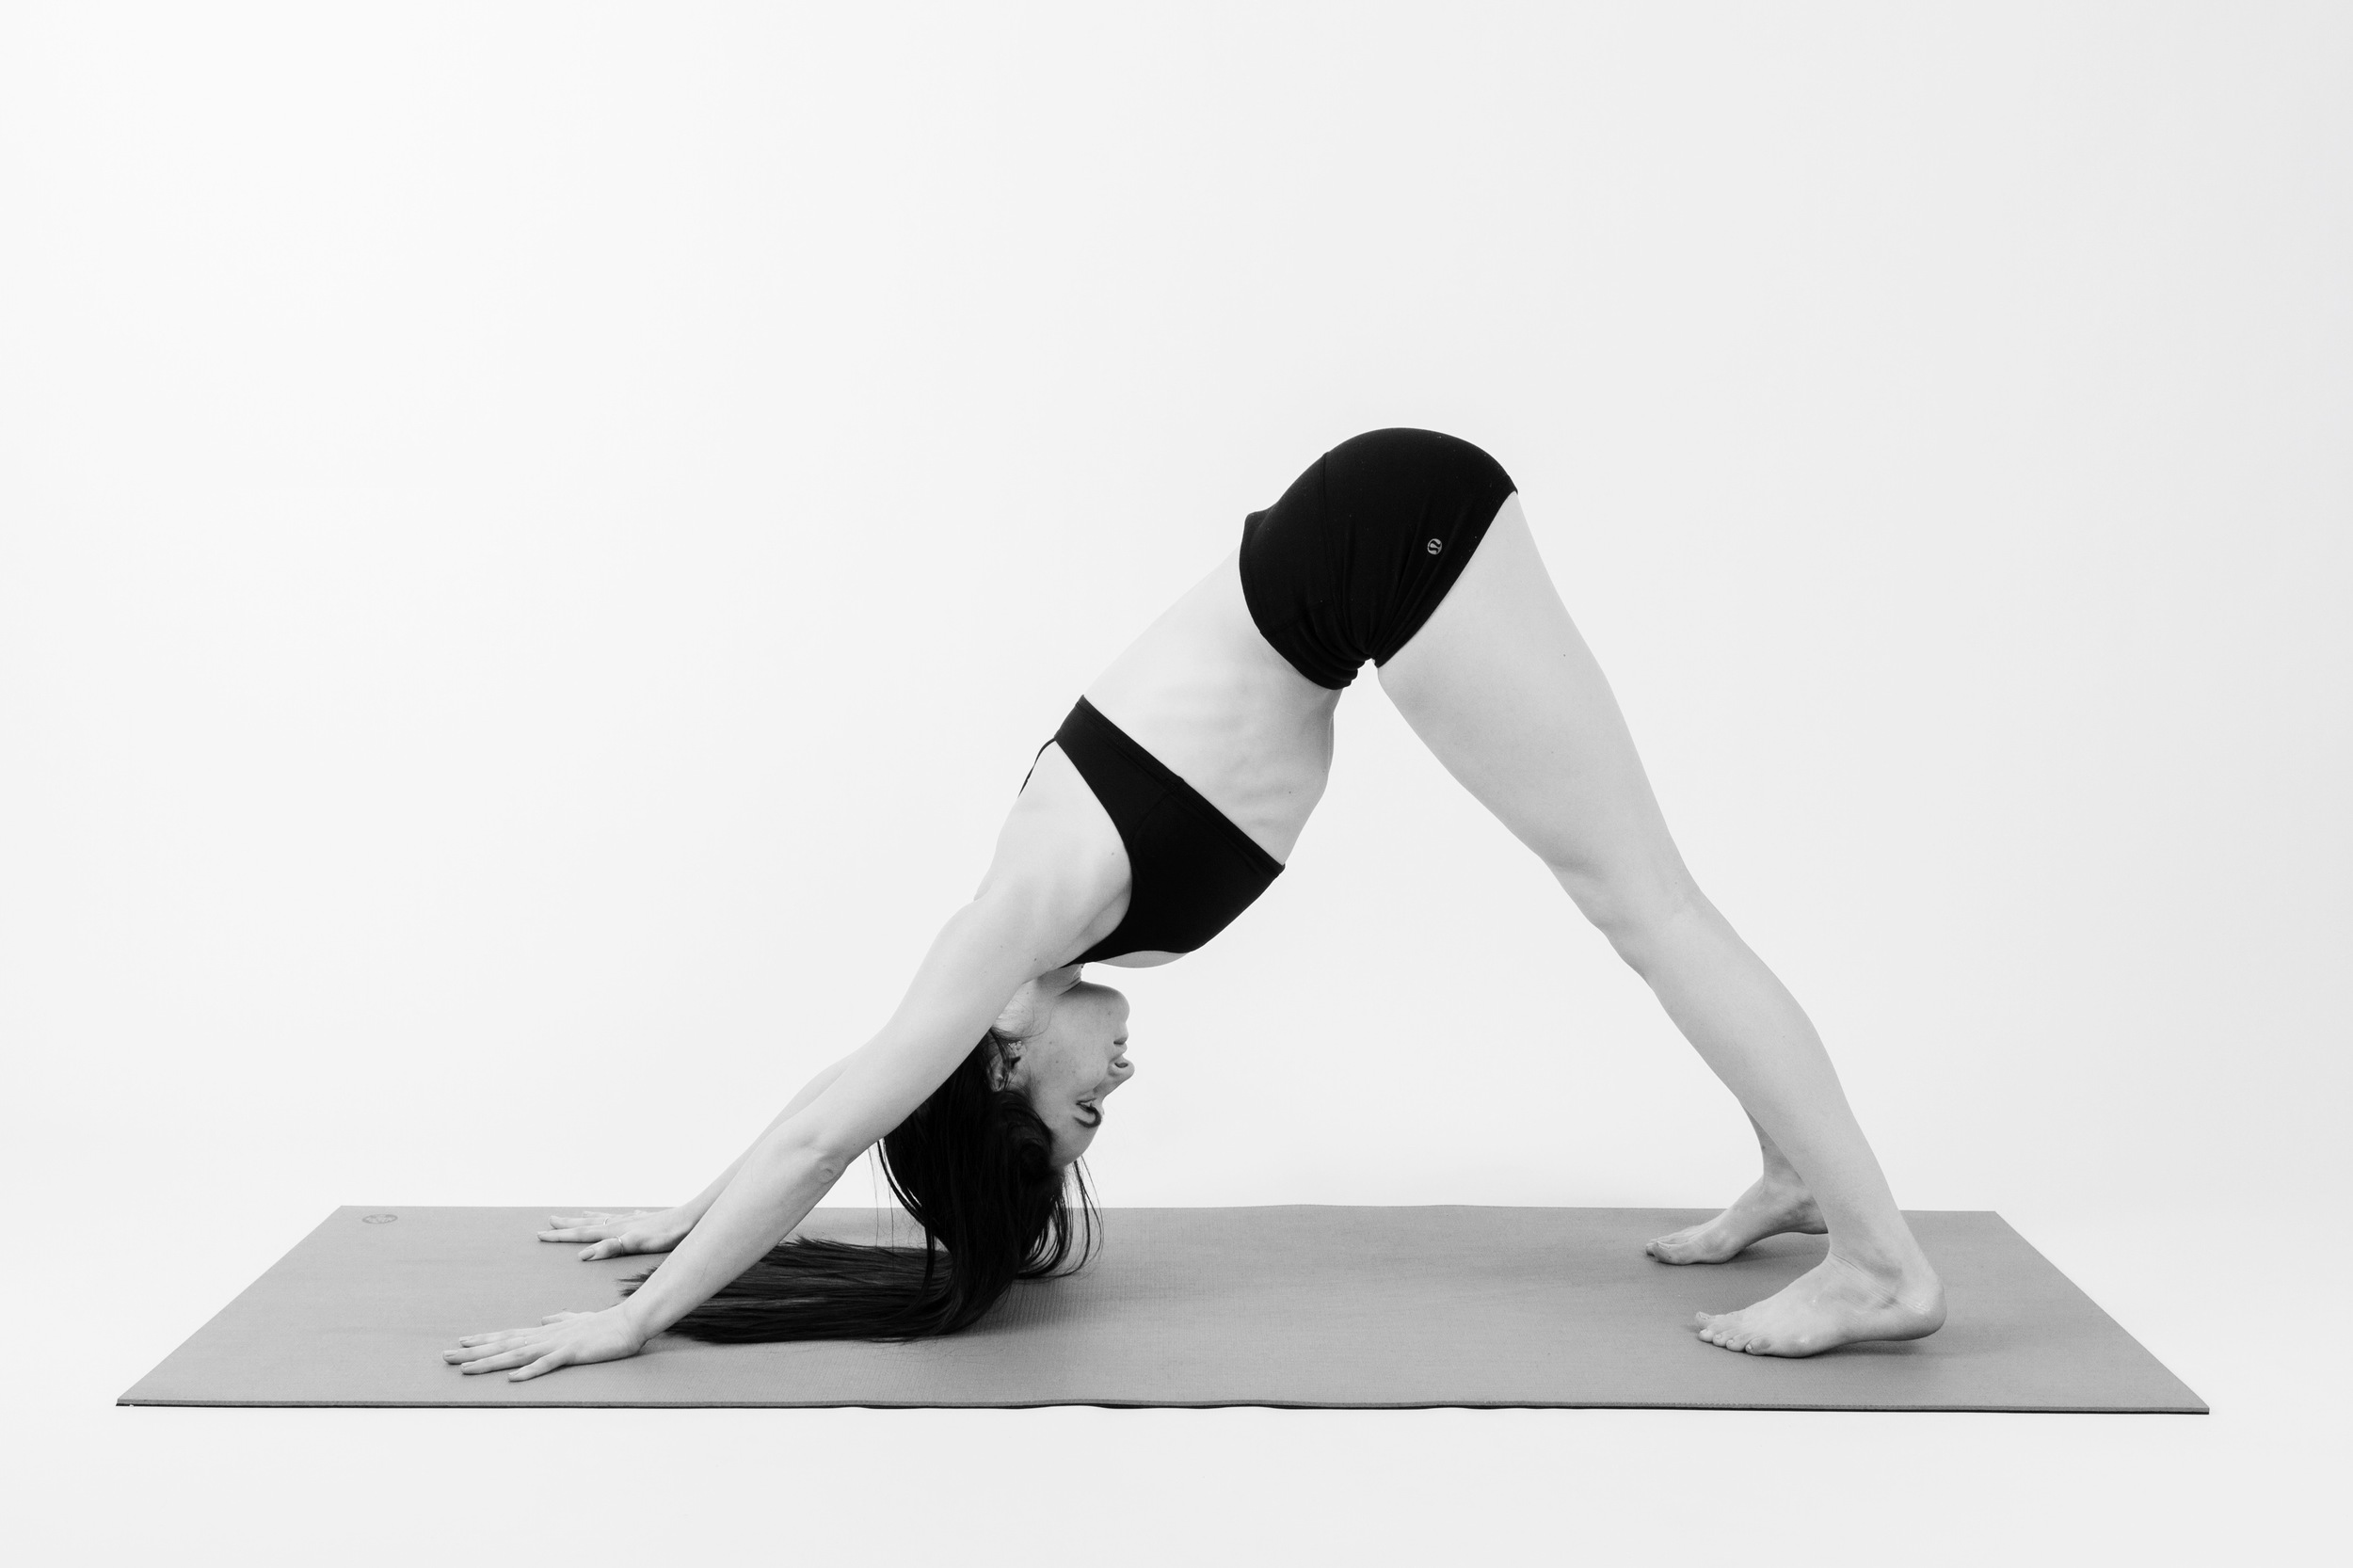 DOWNWARD FACING DOG     Exhale lift your hips up and back. Turn your gaze towards your navel.     Repeat these movements linked together as a sequence for a few rounds. You decide how fast or slow to go. Traditionally Sun Salutations were used in yoga as a warm up, so don't be afraid to push yourself and really get your heart pumping.